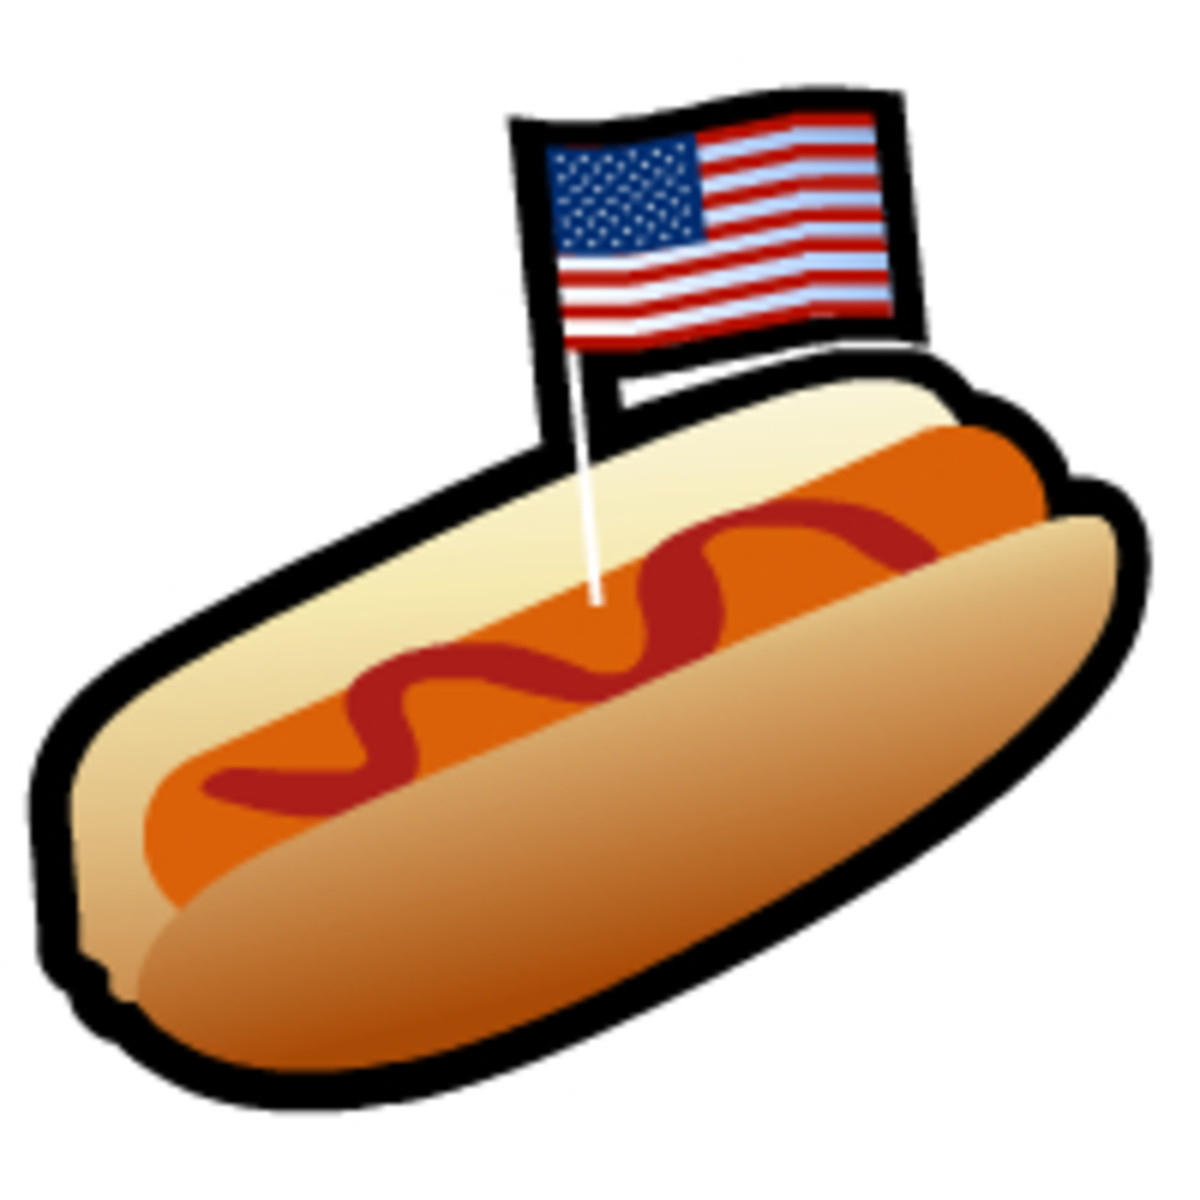 Fourth of July clip art: hot dog